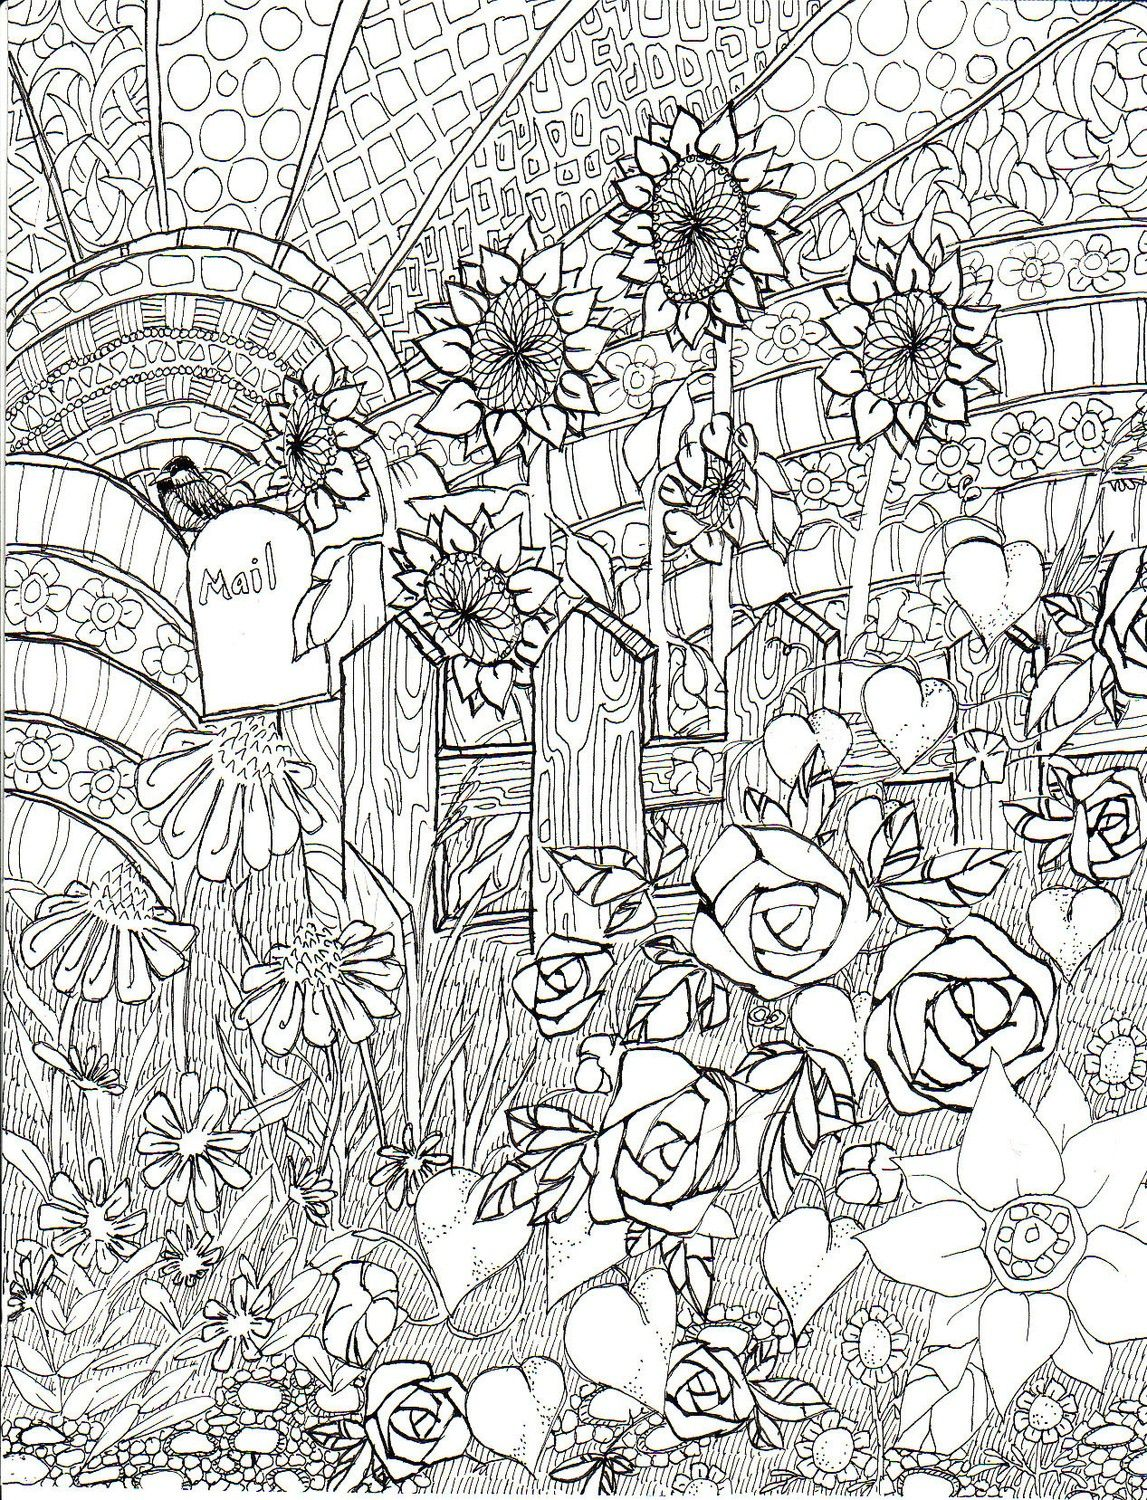 Late Summer Garden Coloring Page Ink Illustration Life In Line